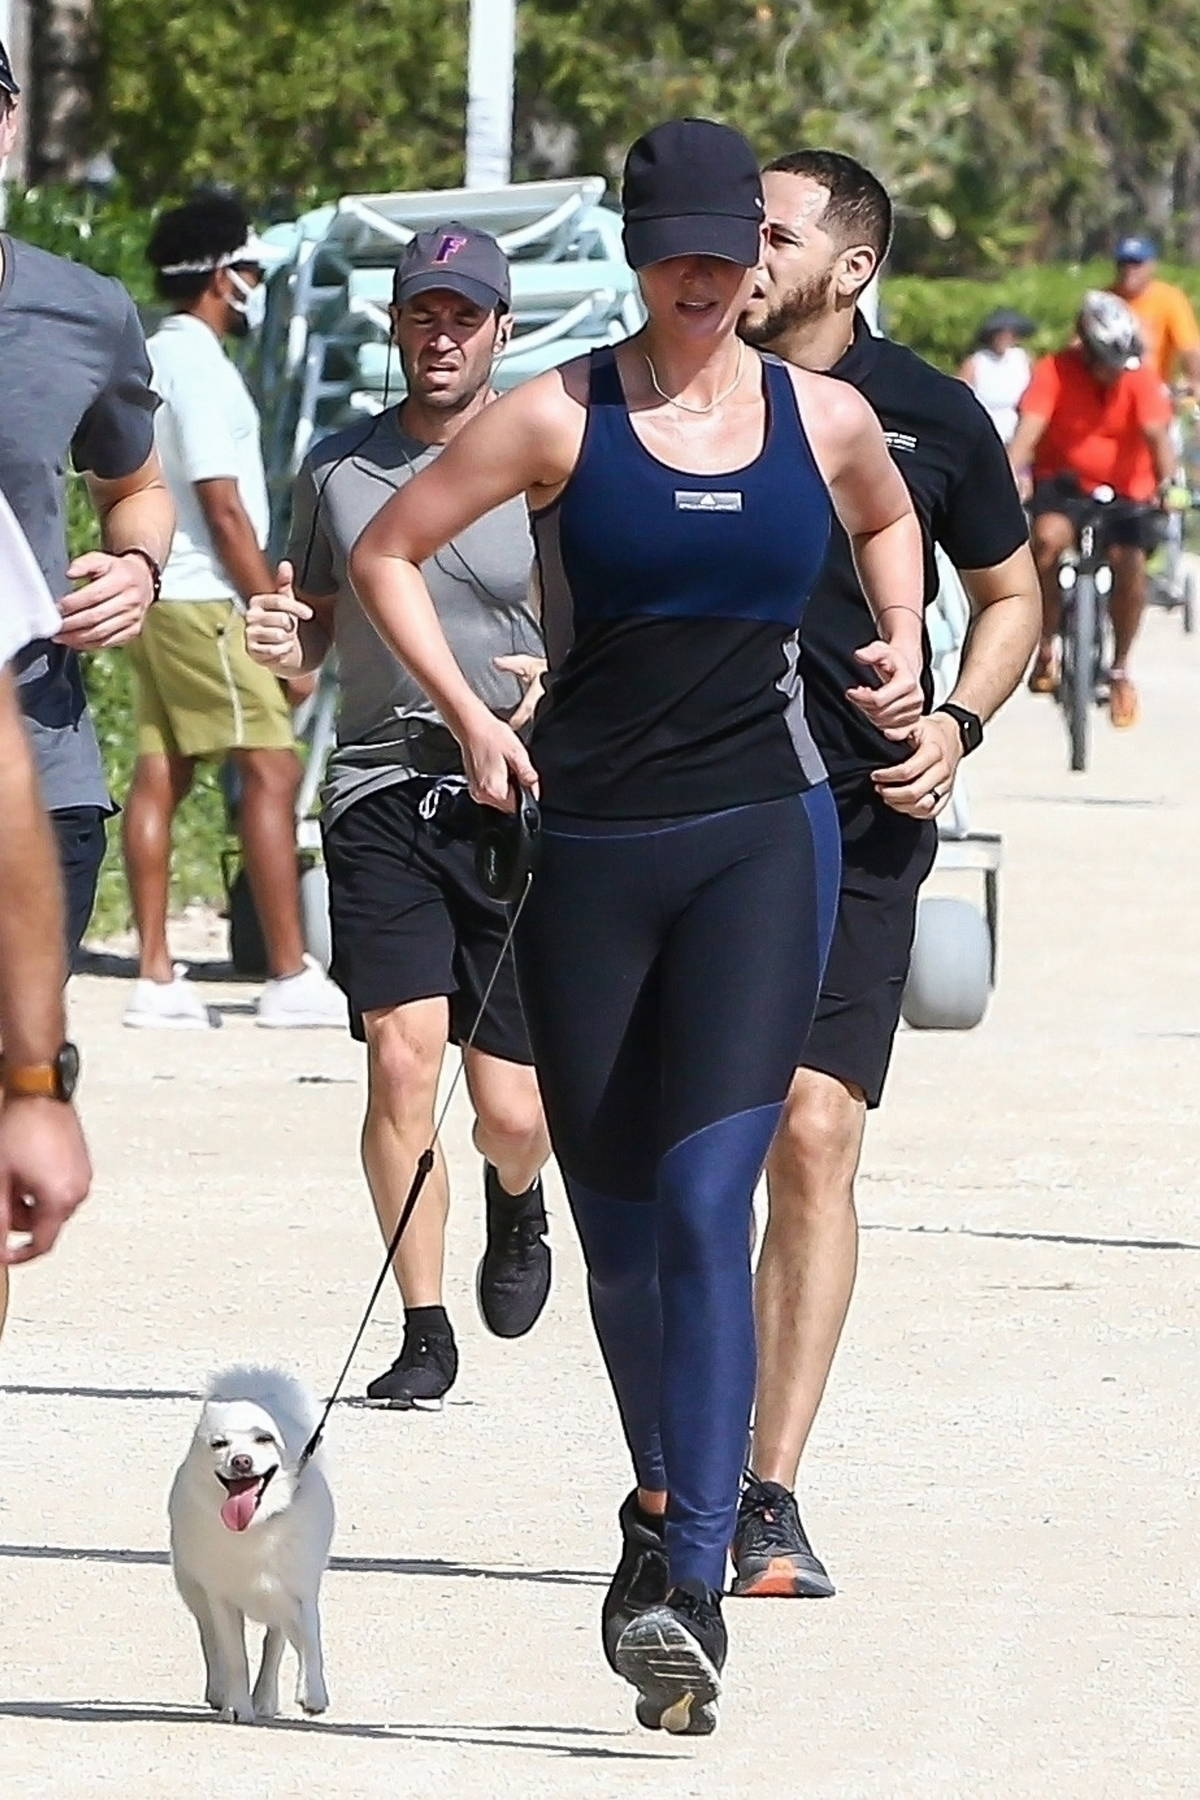 Ivanka Trump looks fit as she goes for an early morning run with Jared Kushner in Miami Beach, Florida